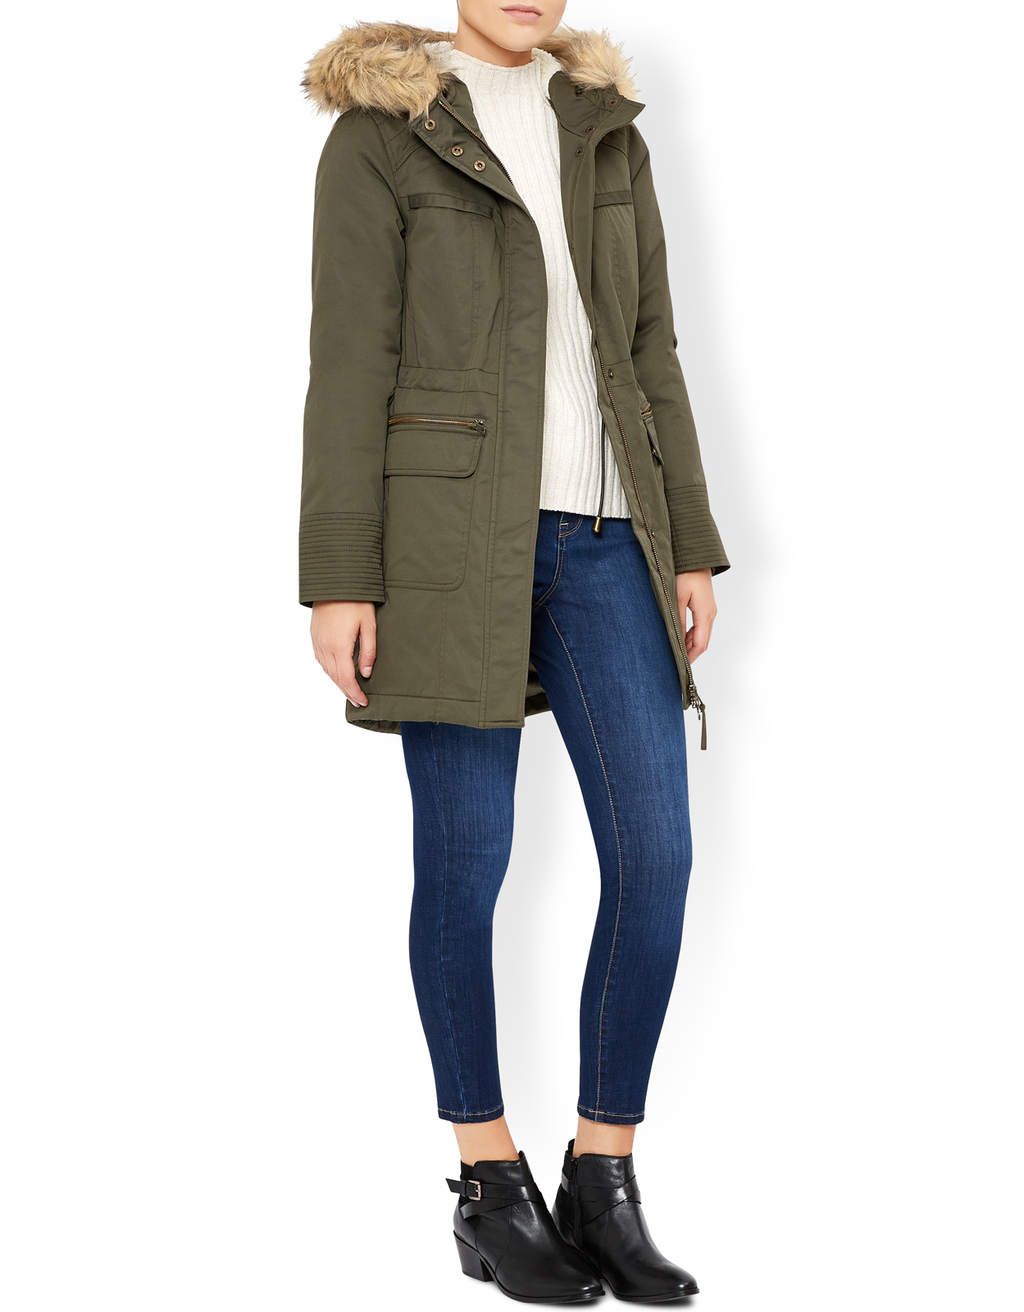 Pip Parka Coat - pattern: plain; length: below the bottom; collar: funnel; style: parka; back detail: hood; secondary colour: camel; predominant colour: khaki; occasions: casual, creative work; fit: straight cut (boxy); fibres: polyester/polyamide - 100%; sleeve length: long sleeve; sleeve style: standard; collar break: high; pattern type: fabric; texture group: woven light midweight; embellishment: fur; season: a/w 2016; wardrobe: highlight; embellishment location: neck